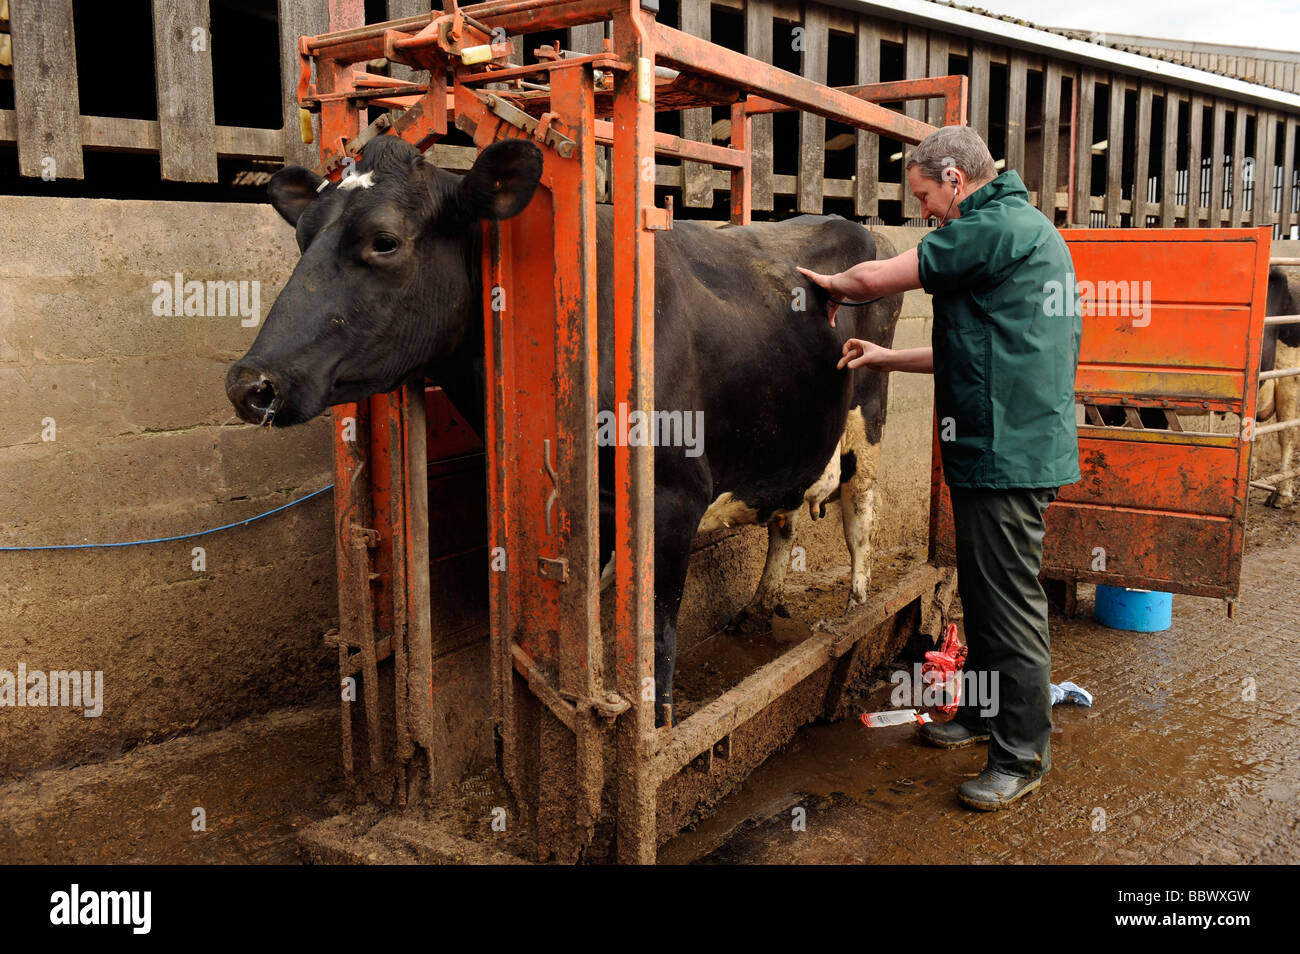 Veterinary surgeon examines a heifer cow in a cattle crush - Stock Image